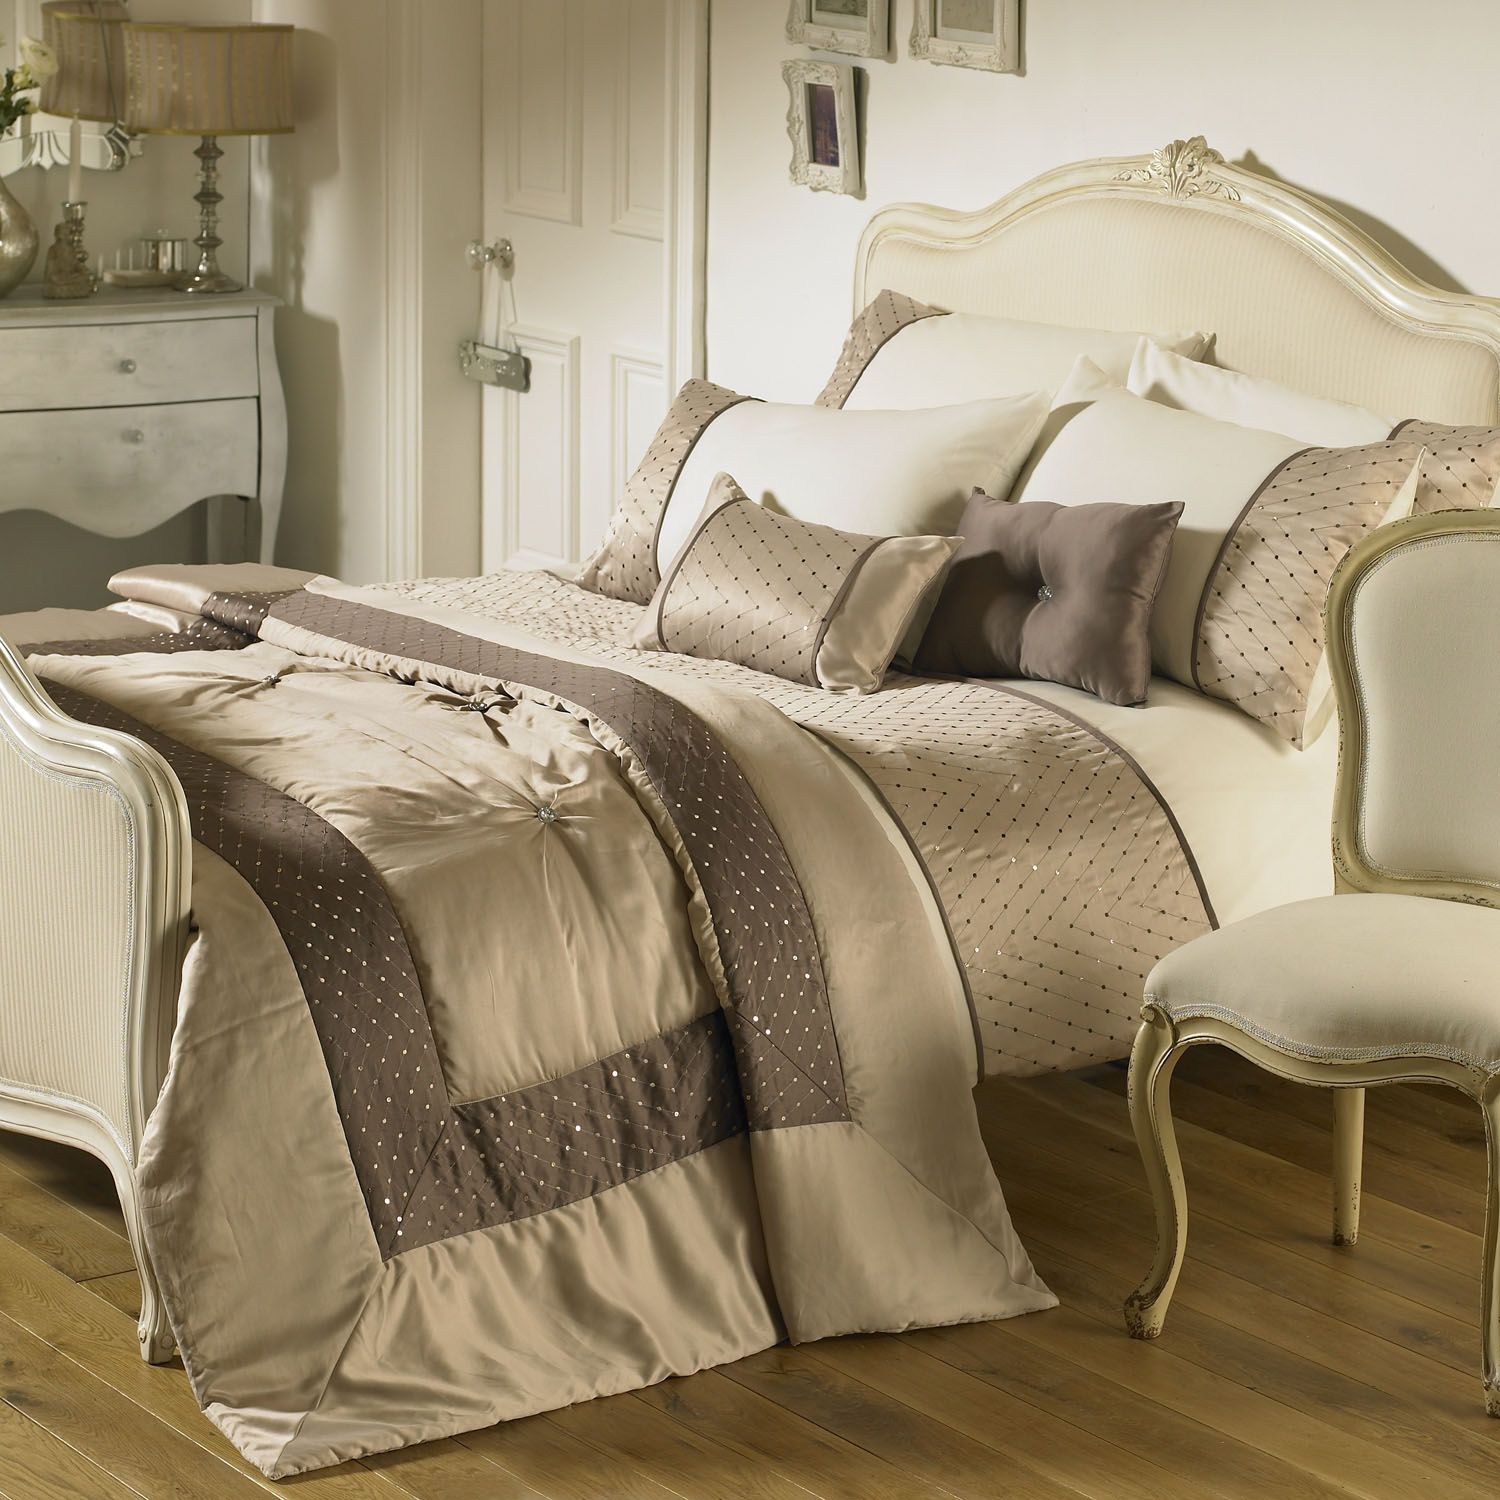 Best Comforters And Bedspreads Bedding Set In Taupe 640 x 480